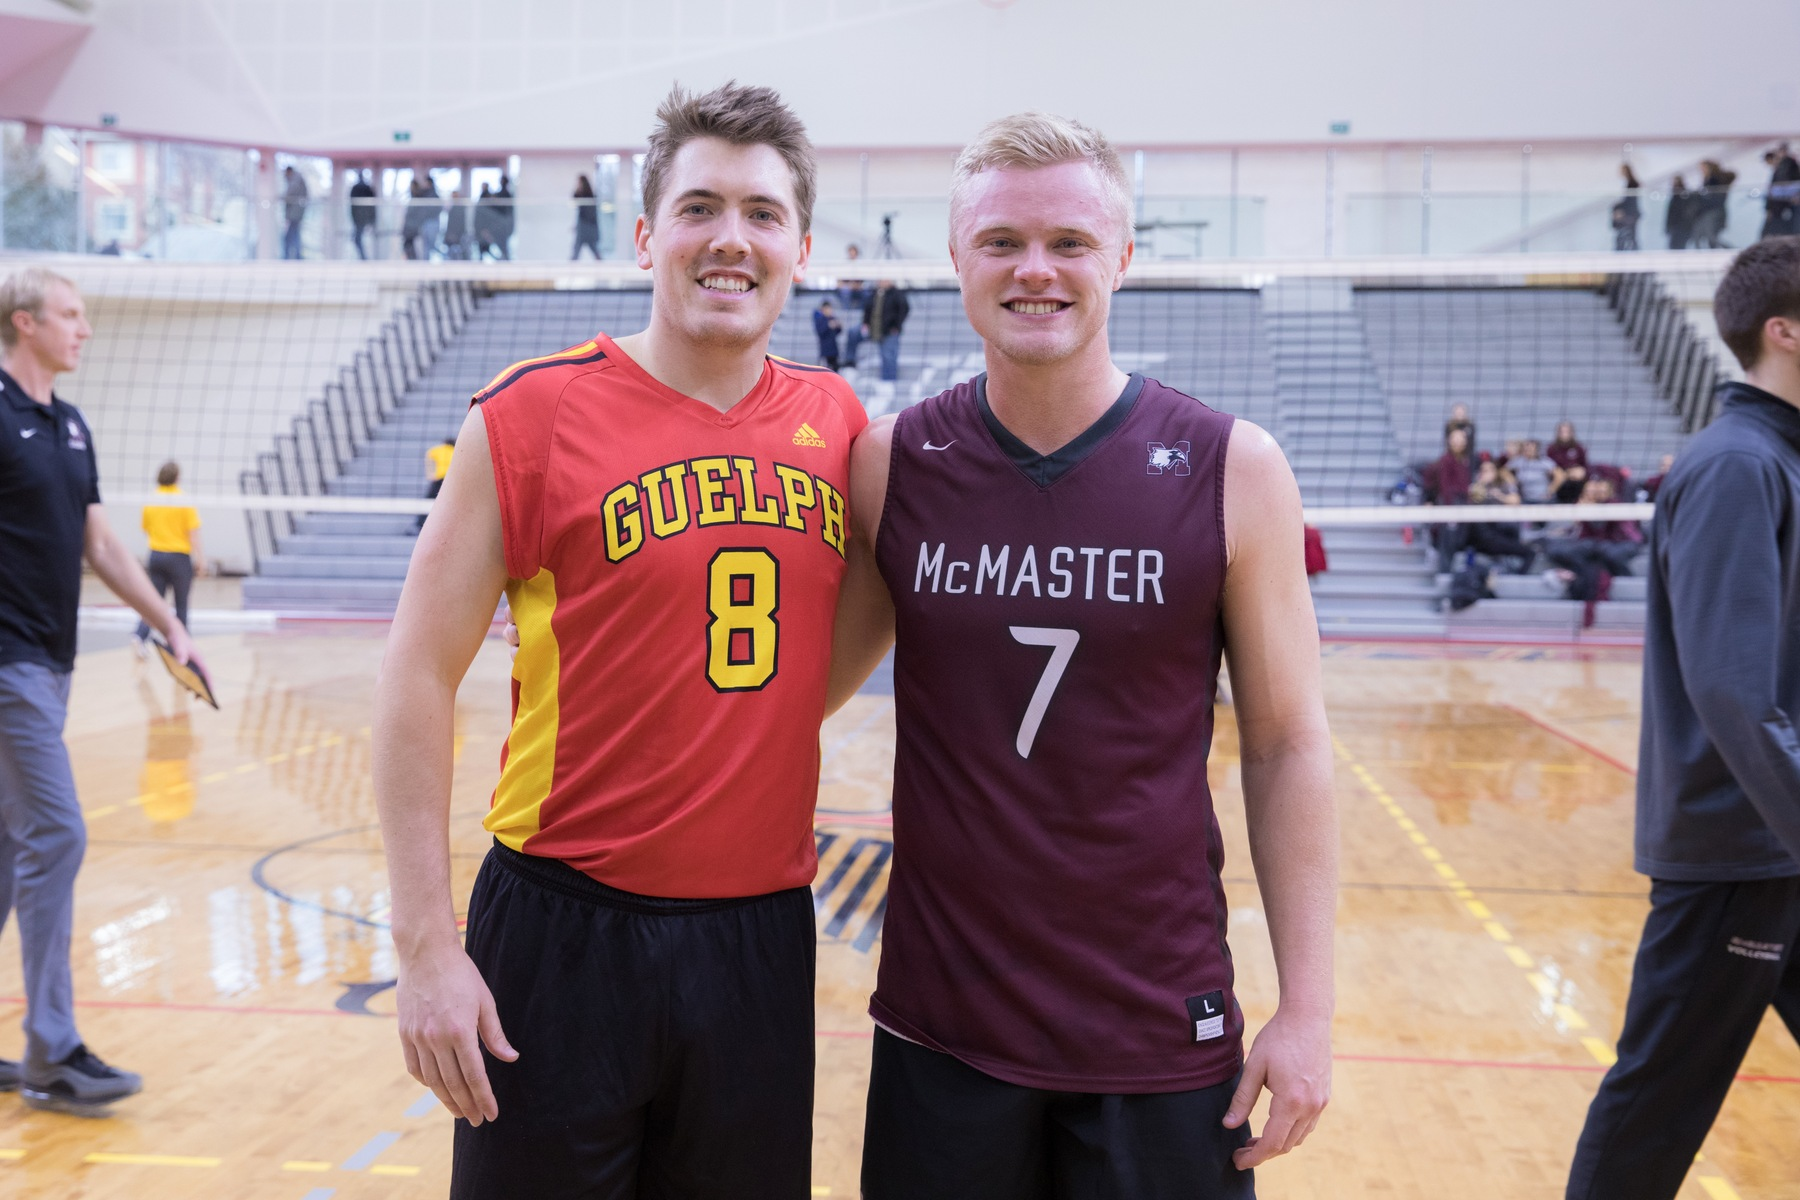 Both Kyle and Andrew's teams play in the OUA West Division and therefore, the brothers have had to face each other twice this season alone and six times over the course of their university careers.